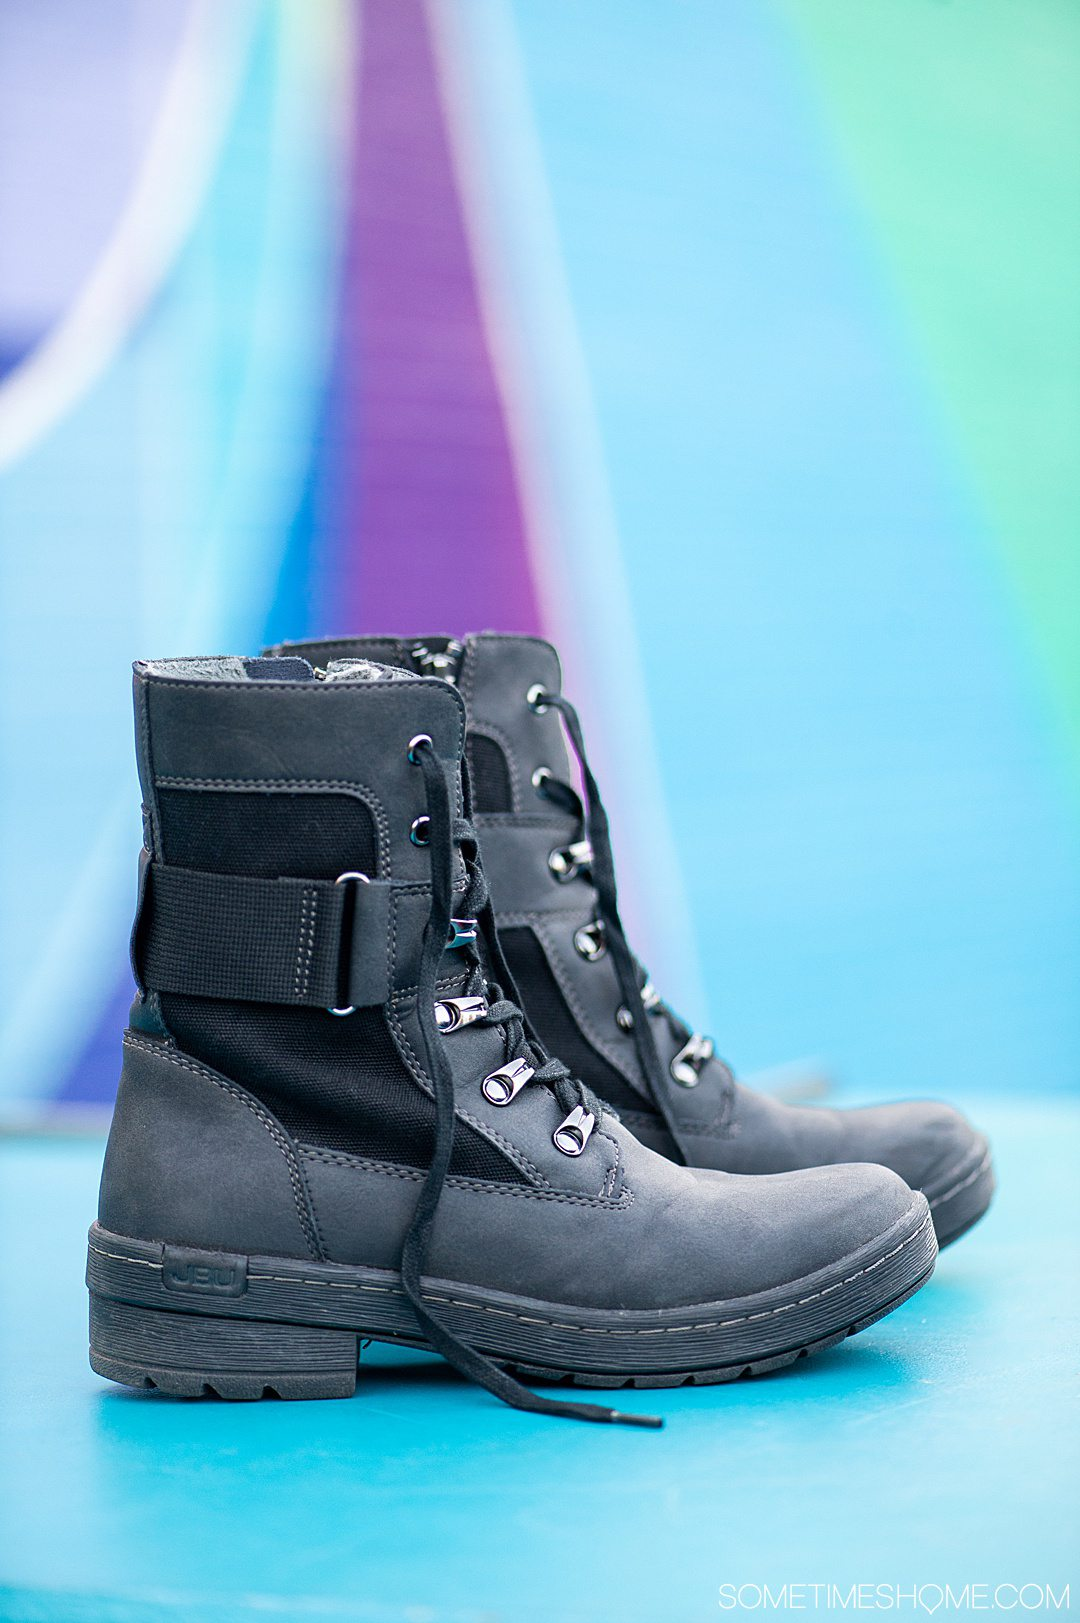 Black pair of combat-inspired Jambu & Co. boots against a colorful background.